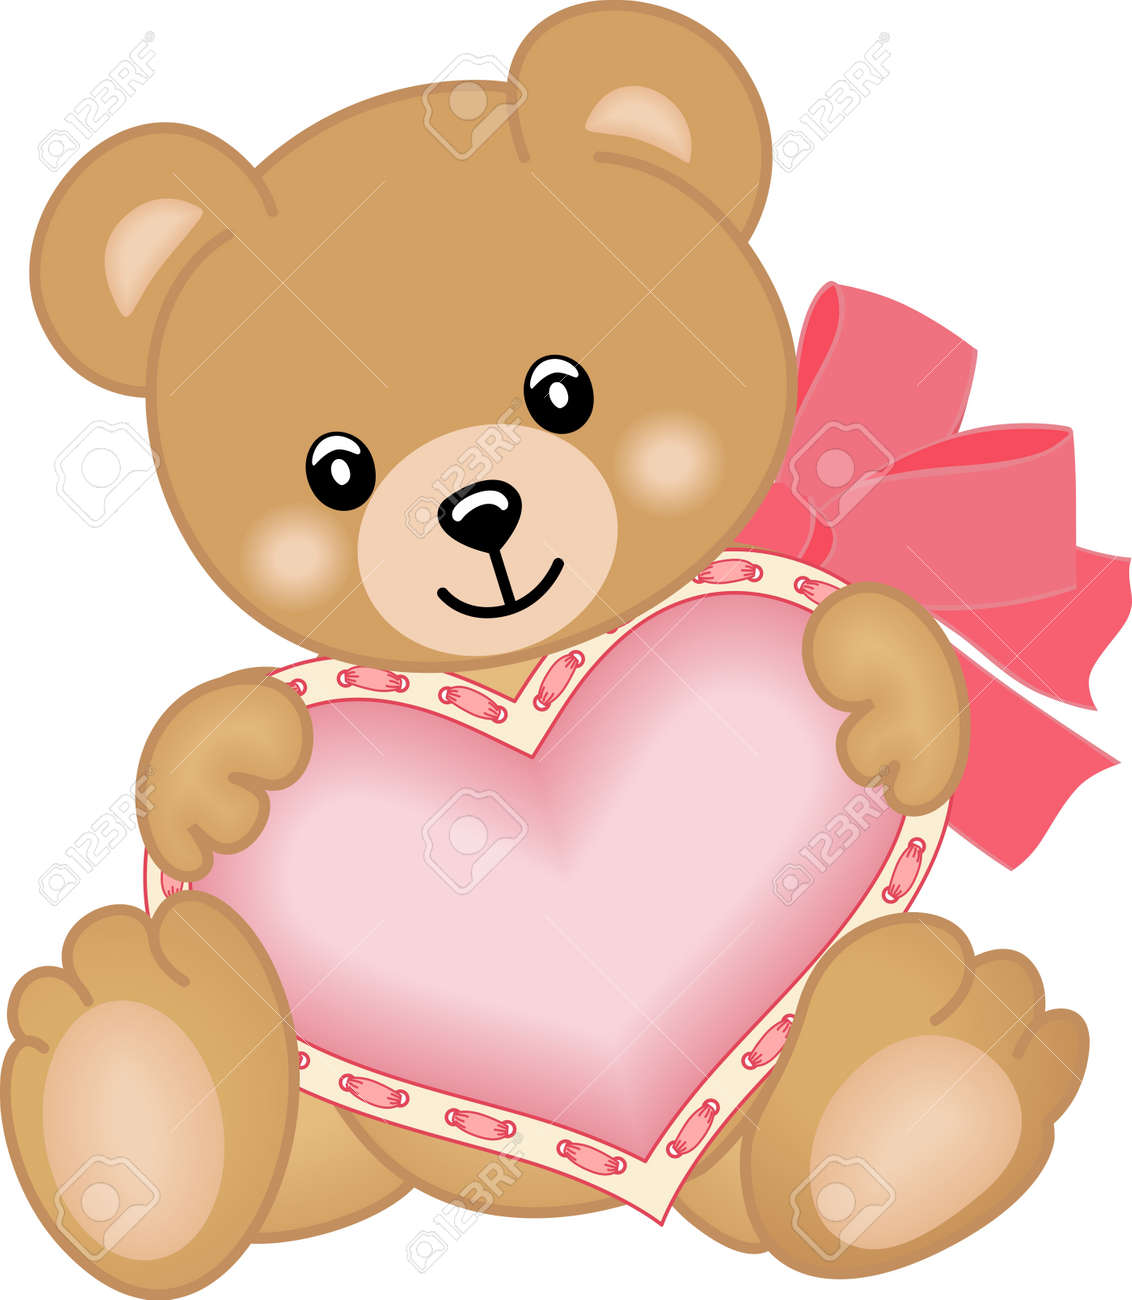 teddy bear heart images u0026 stock pictures royalty free teddy bear